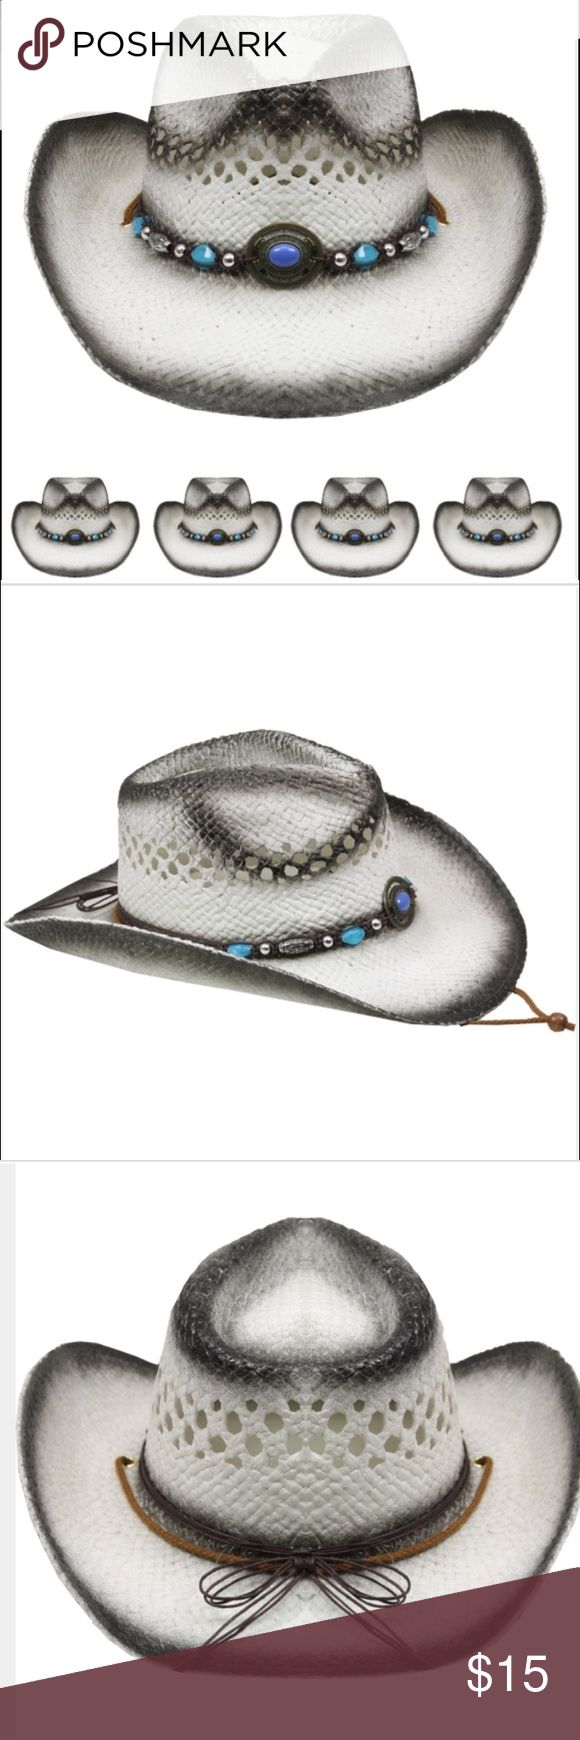 Kids cowboy hat cap popular fashion bucket western This Hats And Caps Kid Fedora & Cowboy Hats Which Is Called Kids Cowboy Hat 306 One Color Is From Our Finest Collection. . We Believe That You Will Feel The Difference And Appreciate When You Receive This Kids Cowboy Hat 306 One Color. If You Want To Grab Your Friends' Attention This Kids Cowboy Hat 306 One Color Would Be The Best Option That You Might Have. Size:45-50 could be ok small hat. Accessories Hats